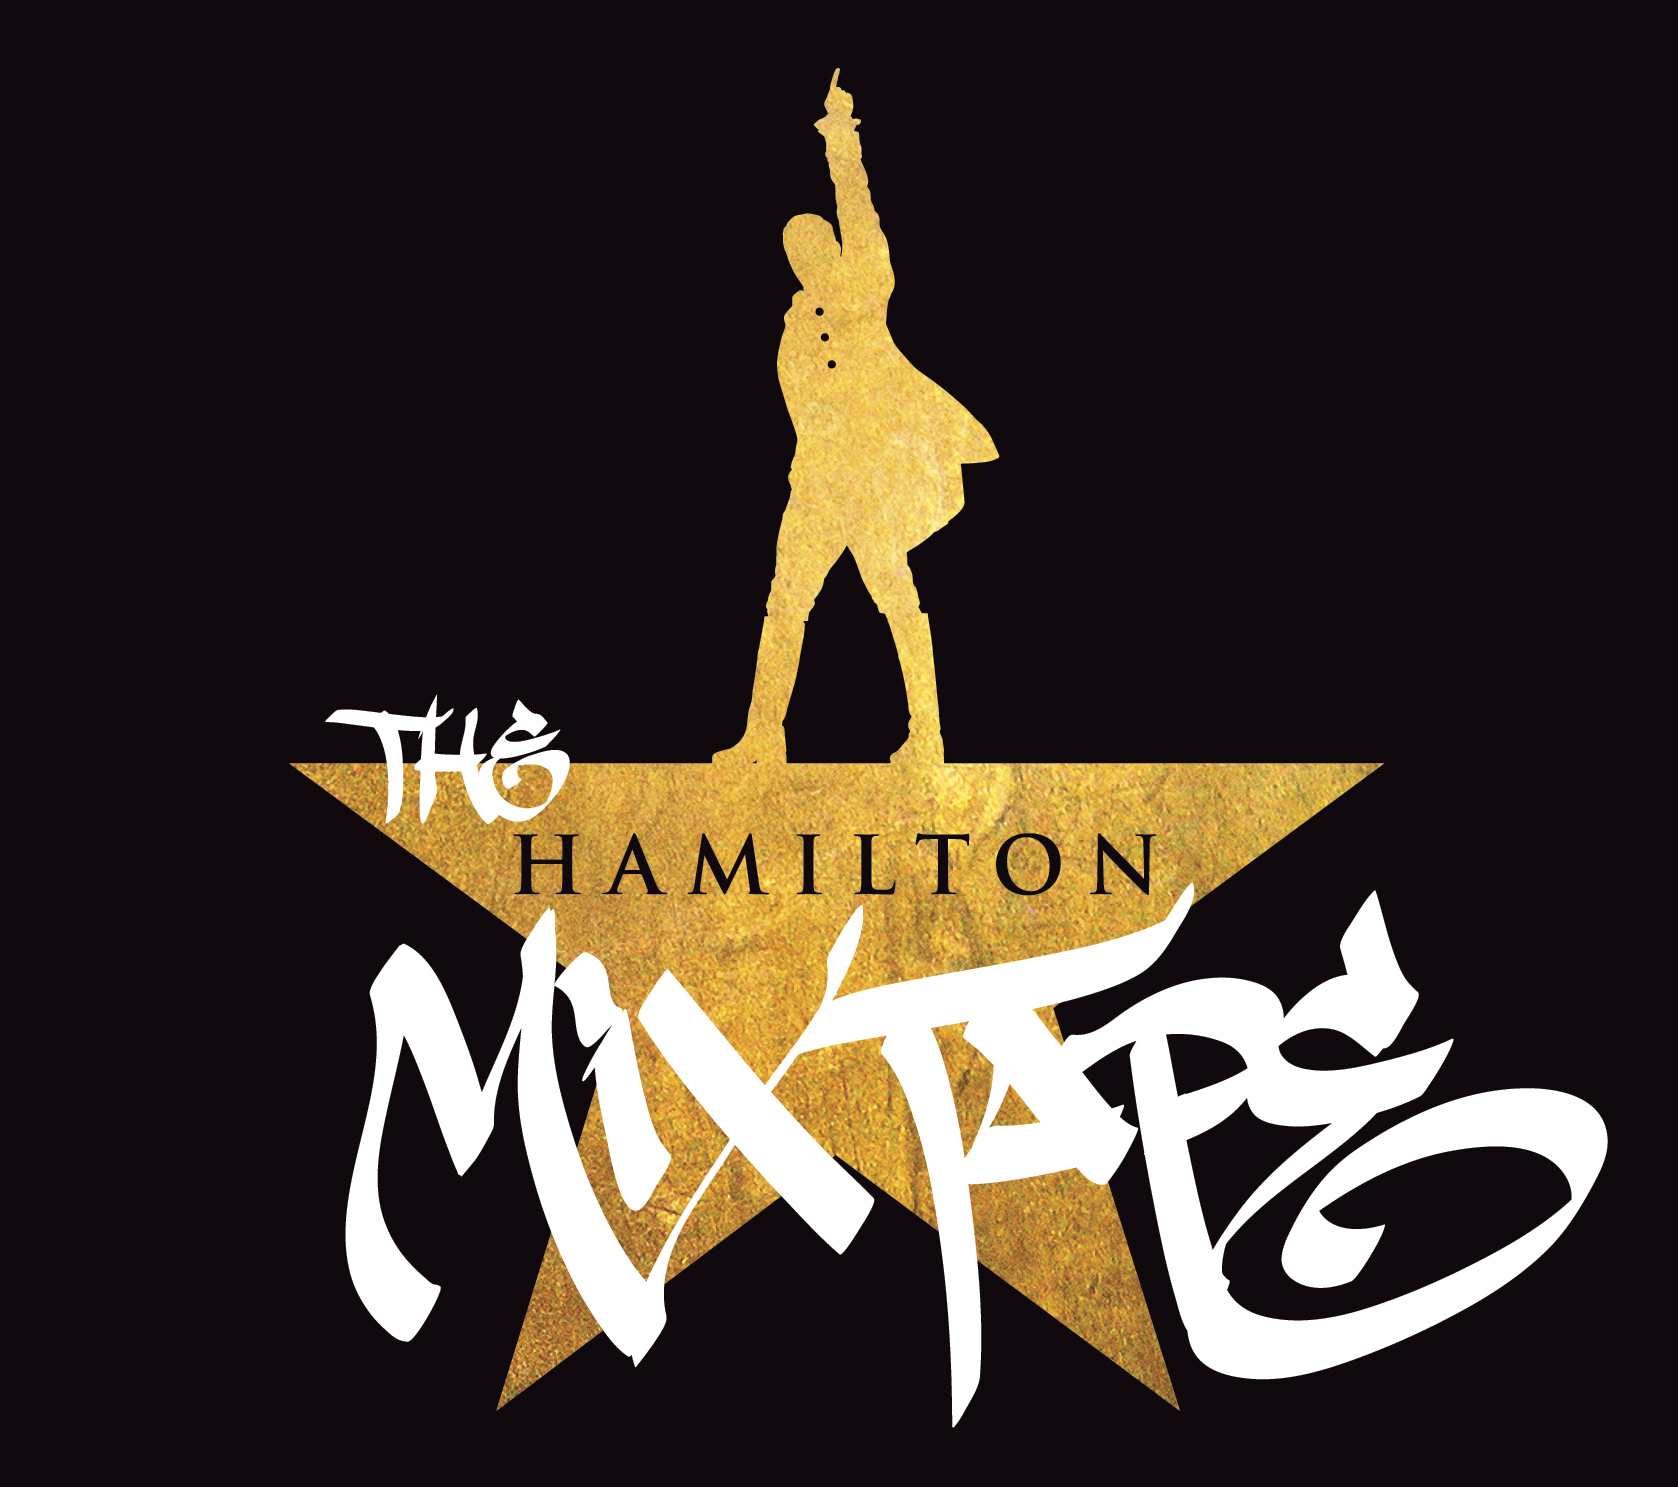 """This CD cover image released by Atlantic Records shows """"The Hamilton Mixtape."""" The 23-track """"Hamilton Mixtape,"""" set for release Friday, features covers by such artists as Usher, Kelly Clarkson, Nas, Ben Folds, Alicia Keys, Ashanti, John Legend, Sia, Common, Wiz Khalifa, Queen Latifah, The Roots, Jill Scott and Busta Rhymes. (Atlantic Records via AP)"""